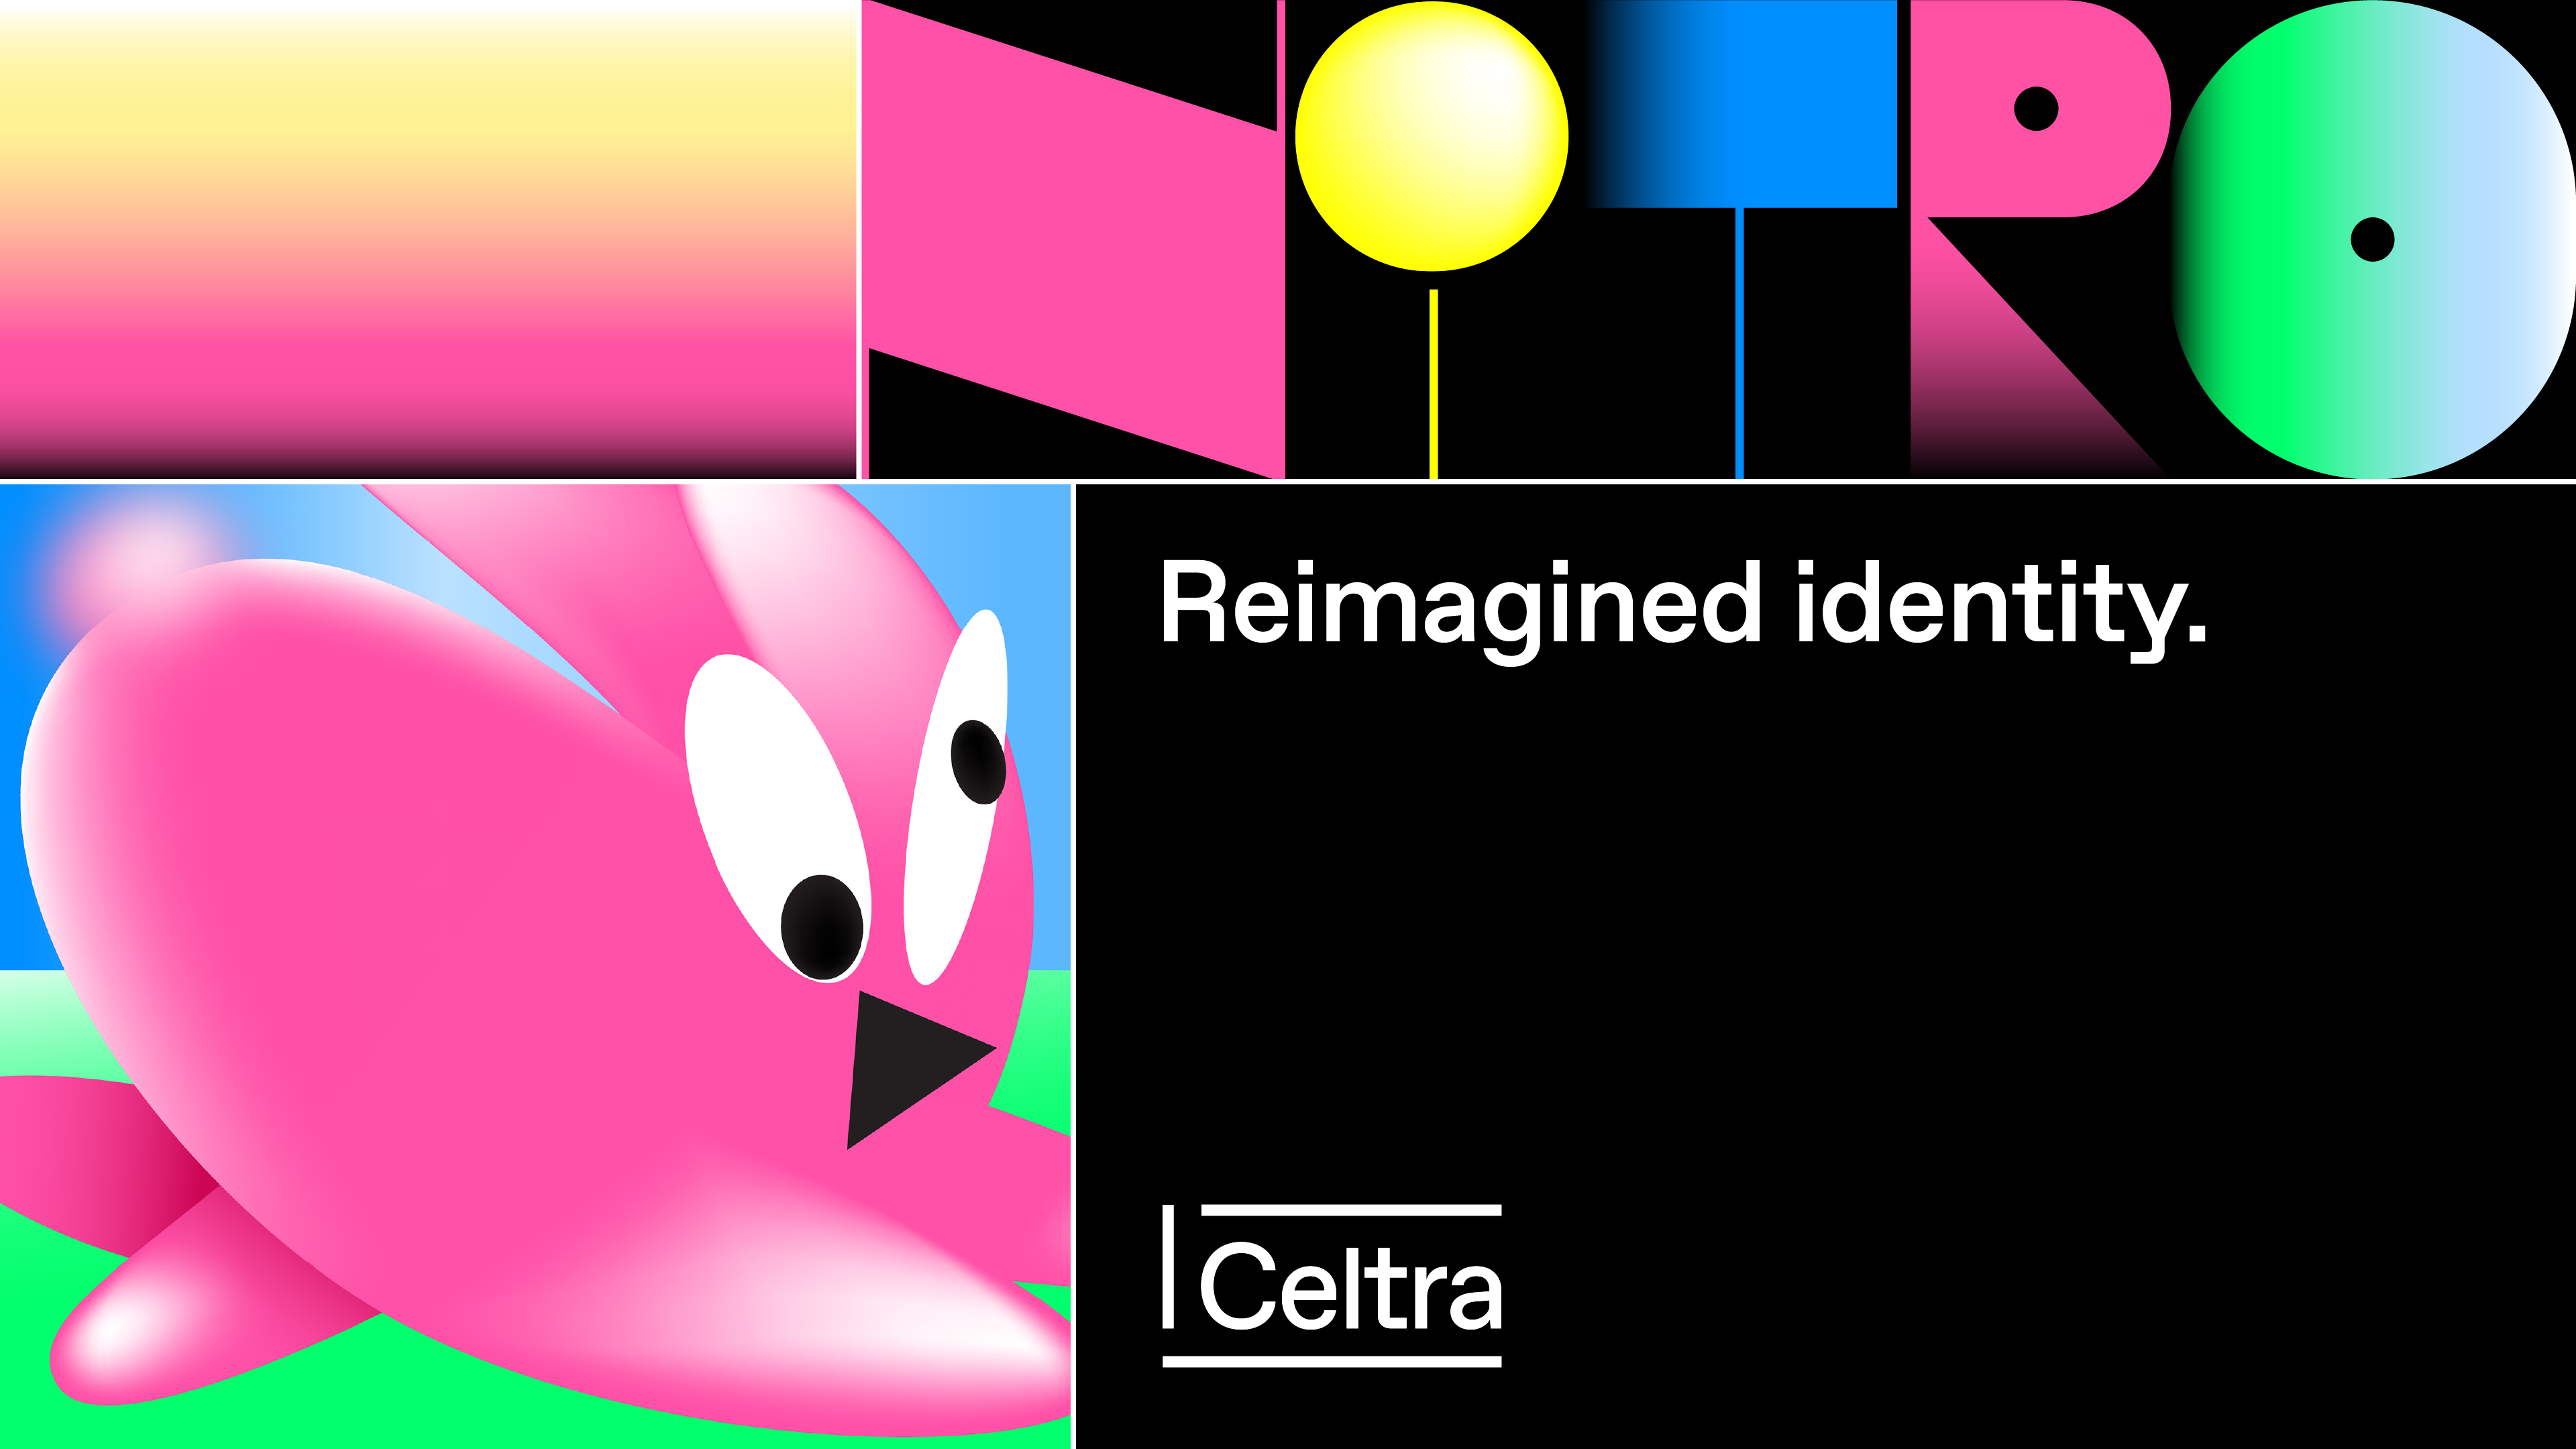 An example of an ad for Celtra redesign.